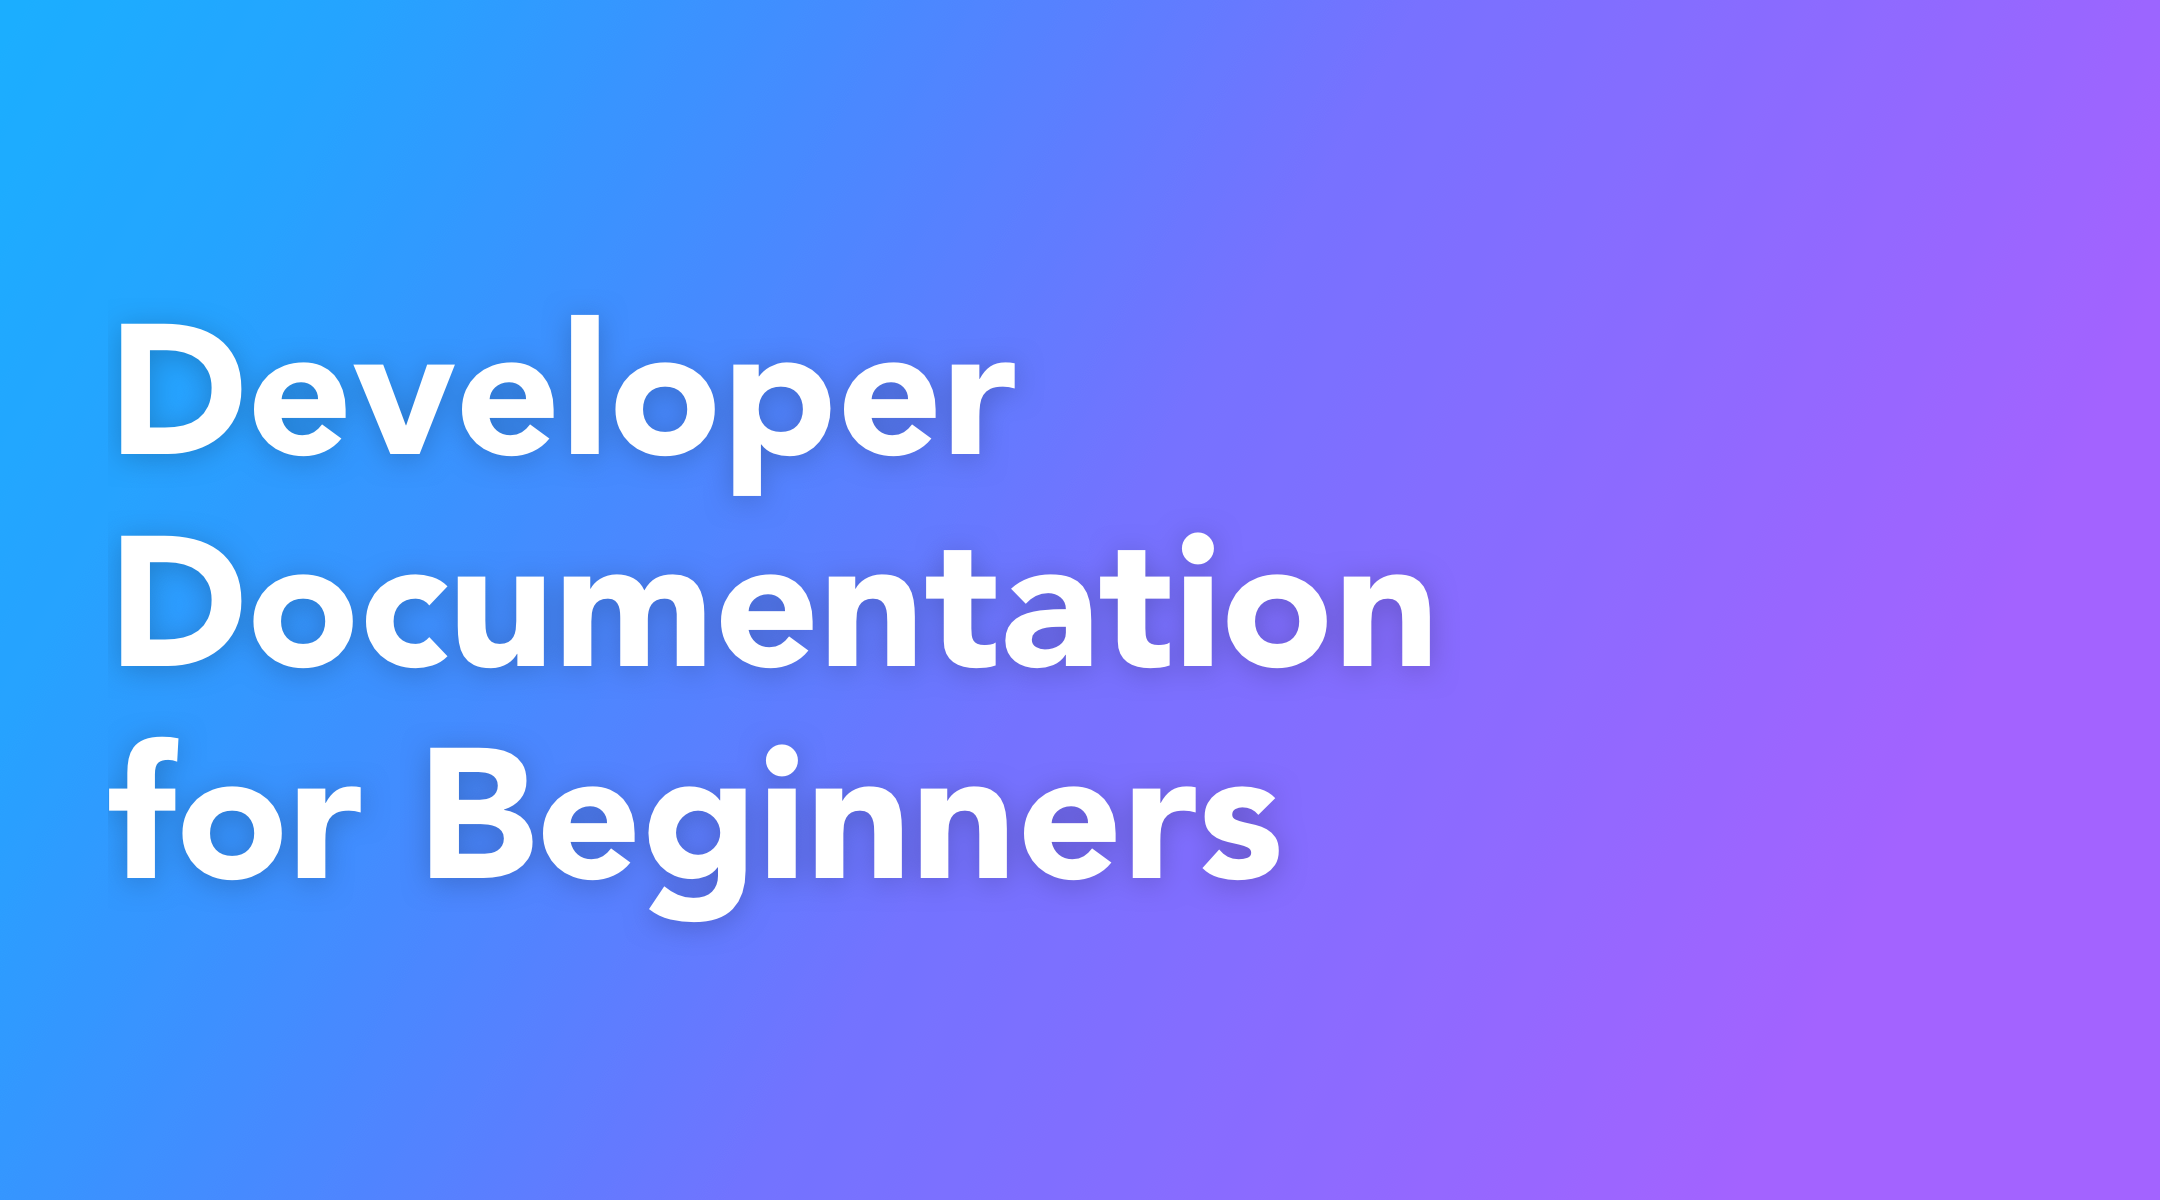 A Beginner's Guide to Using Developer Documentation Like a Pro